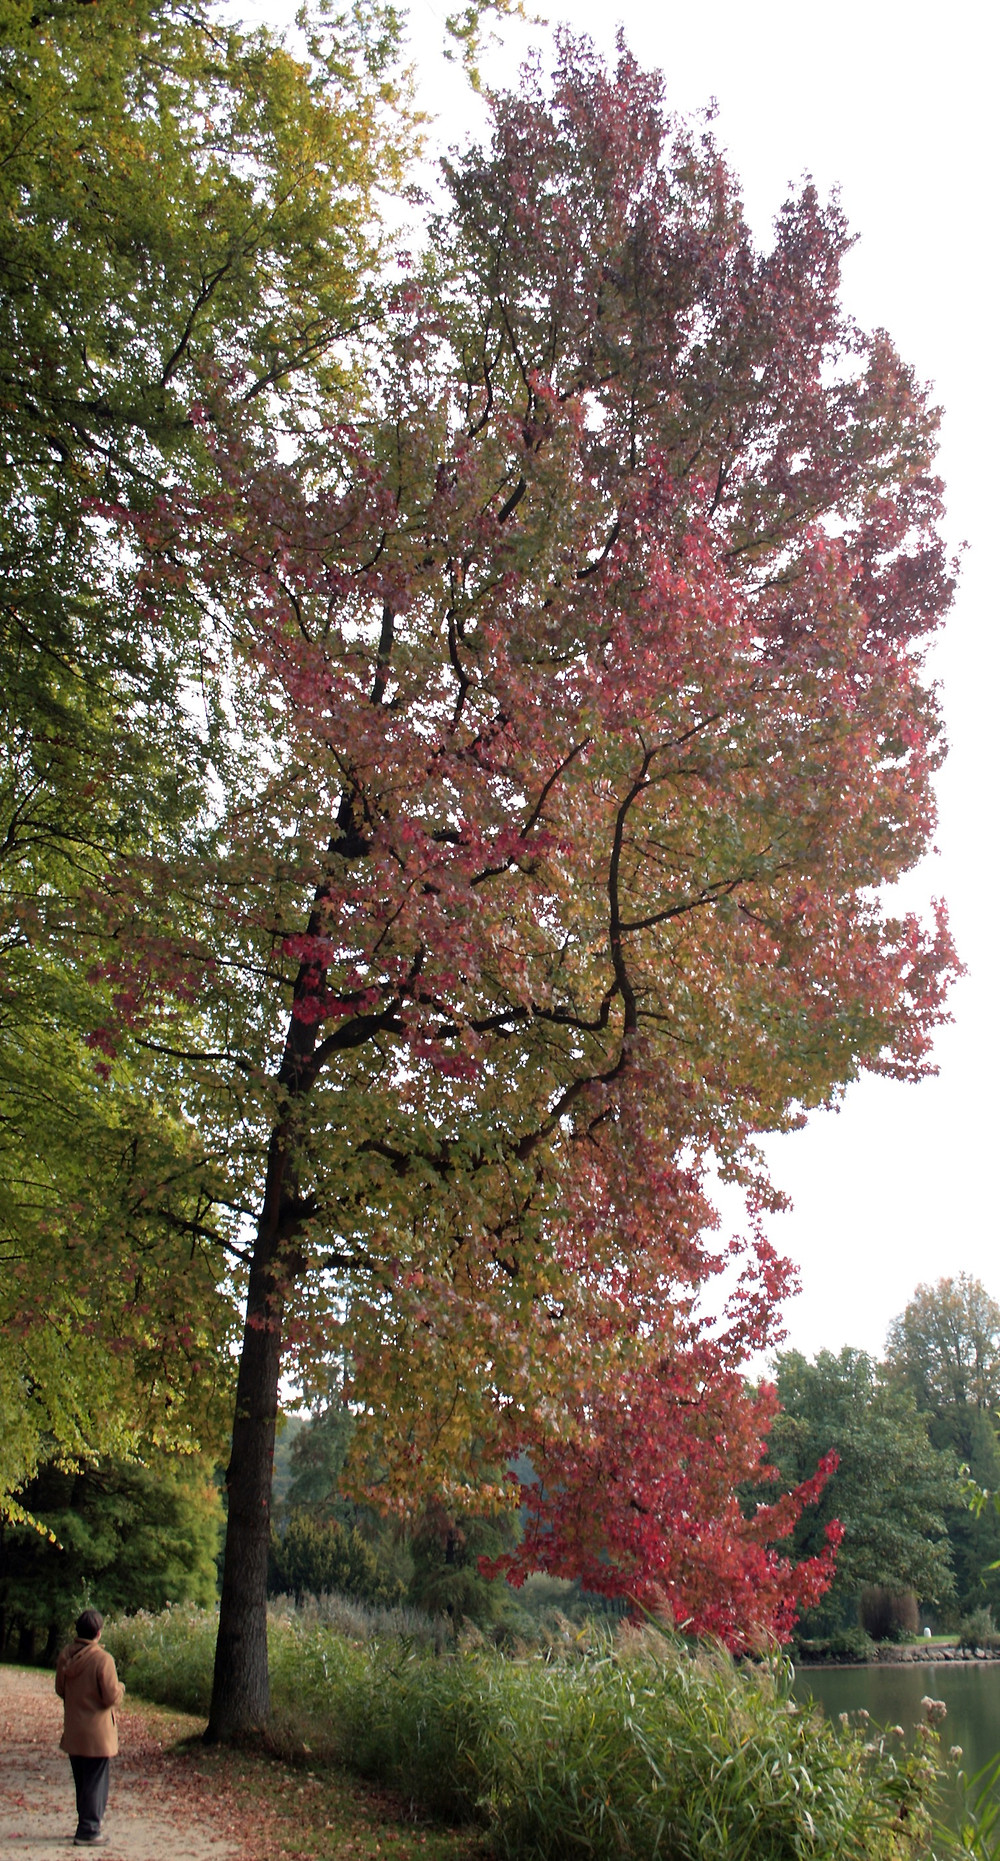 Sweetgum tree with red fall leaves along a path and lake